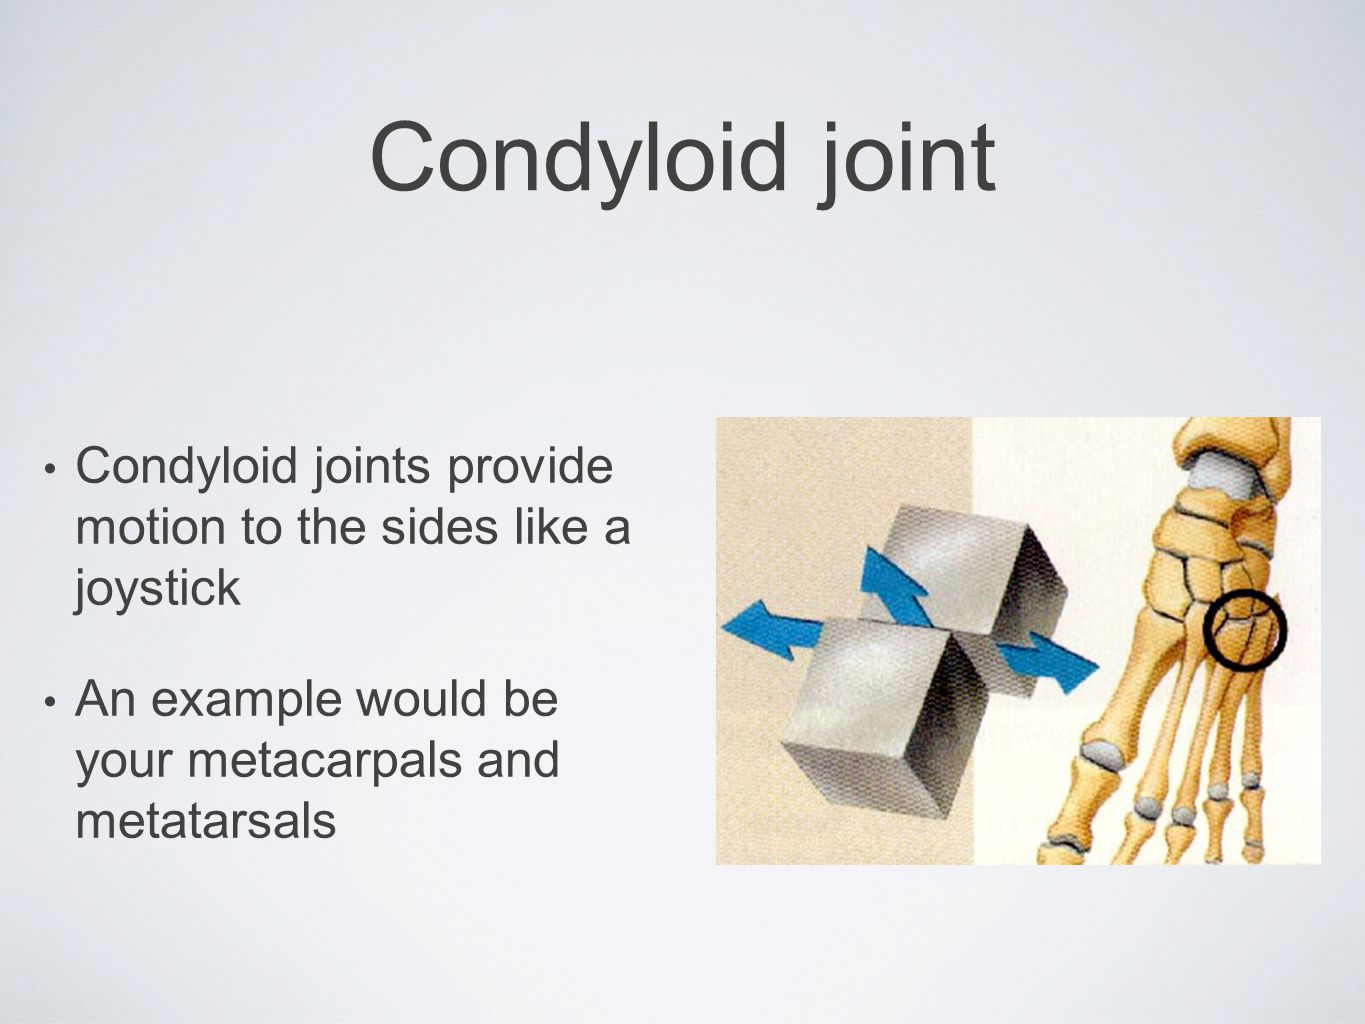 Condyloid joint Condyloid joints provide motion to the sides like a joystick An example would be your metacarpals and metatarsals